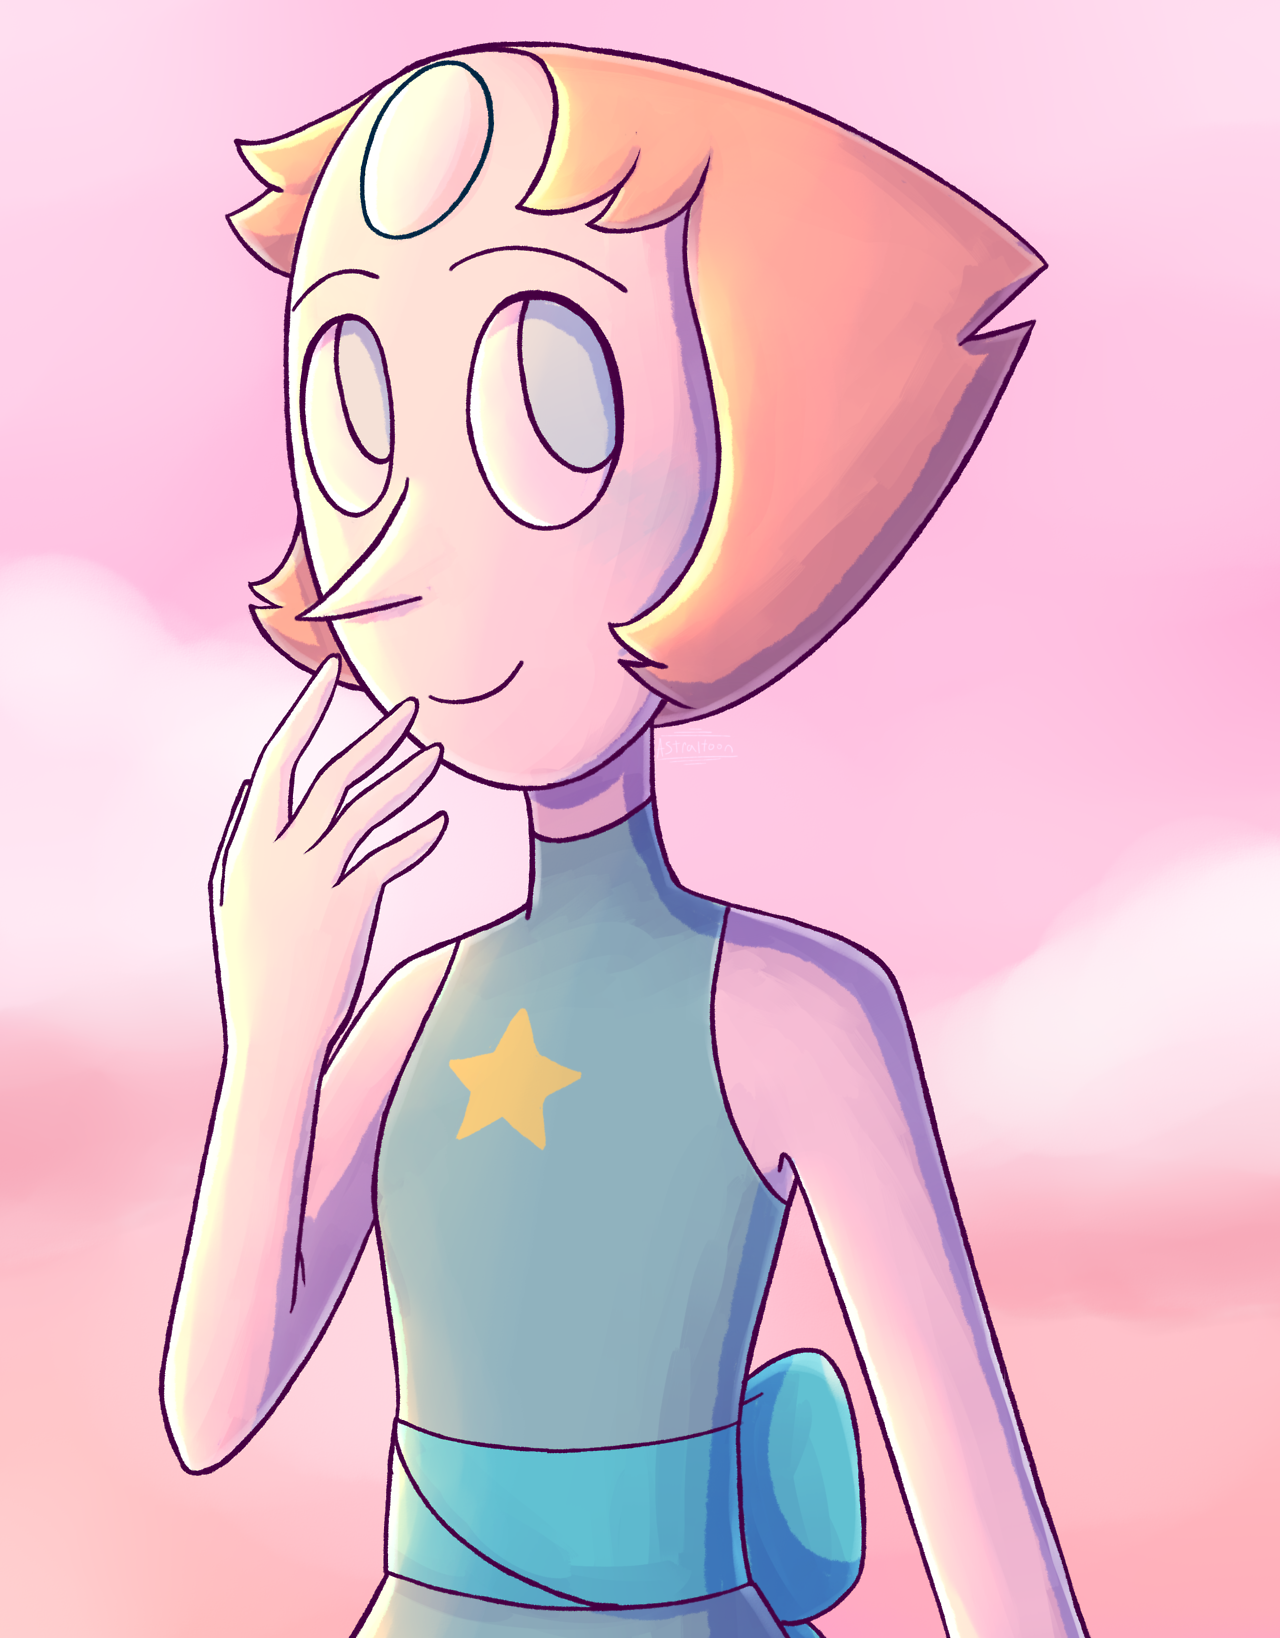 @pearl-likes-pi Happy birthdae it's a little late but here's a Porl for u (there's also a speedpaint!)